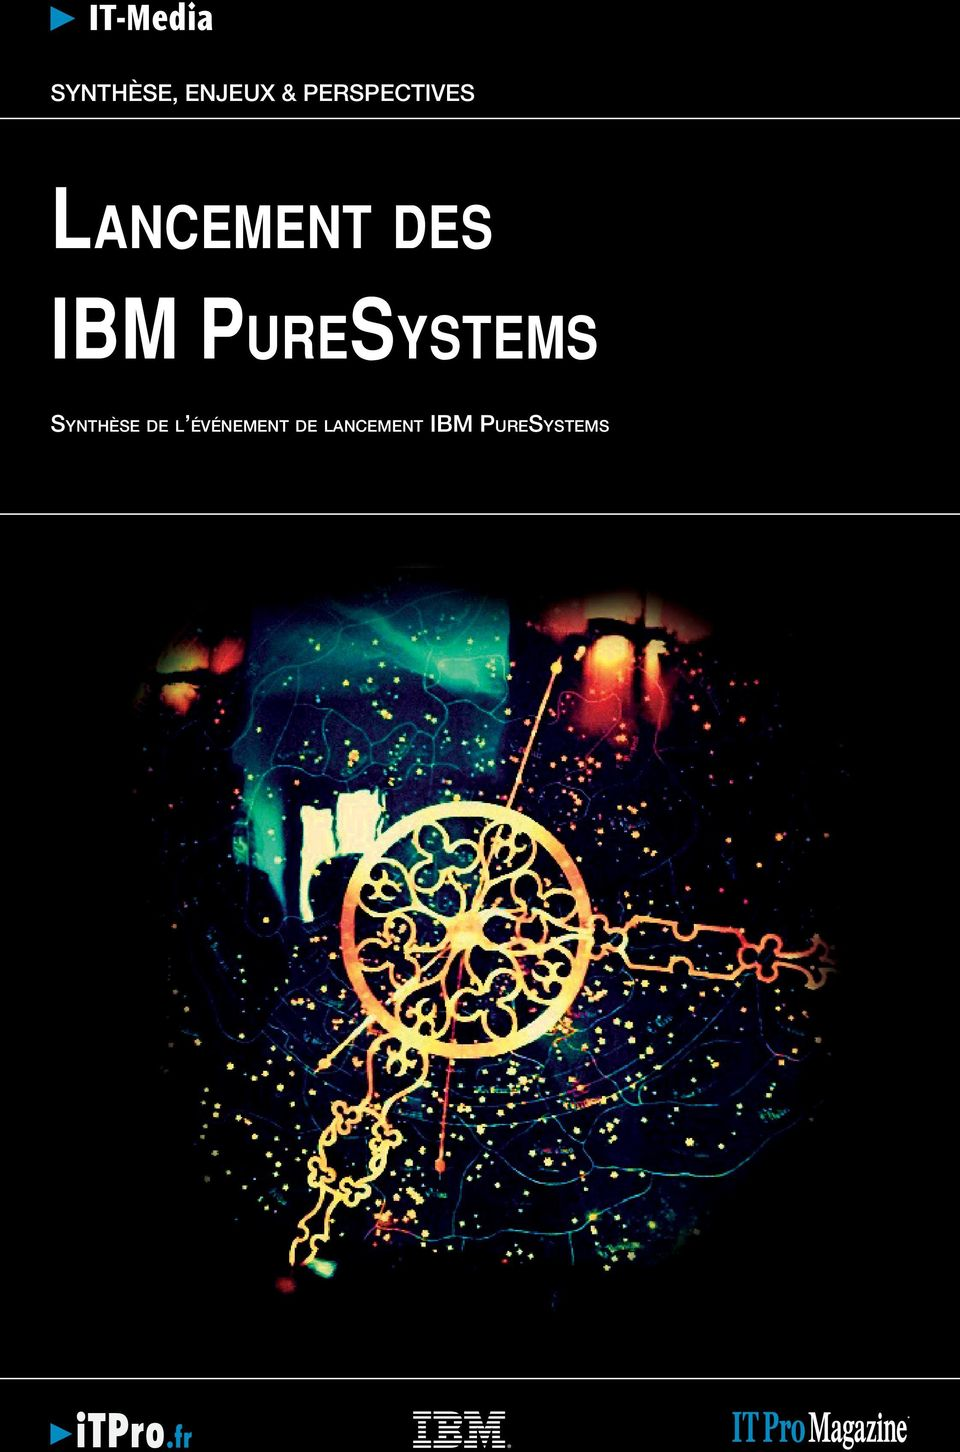 IBM PureSystems Synthèse de